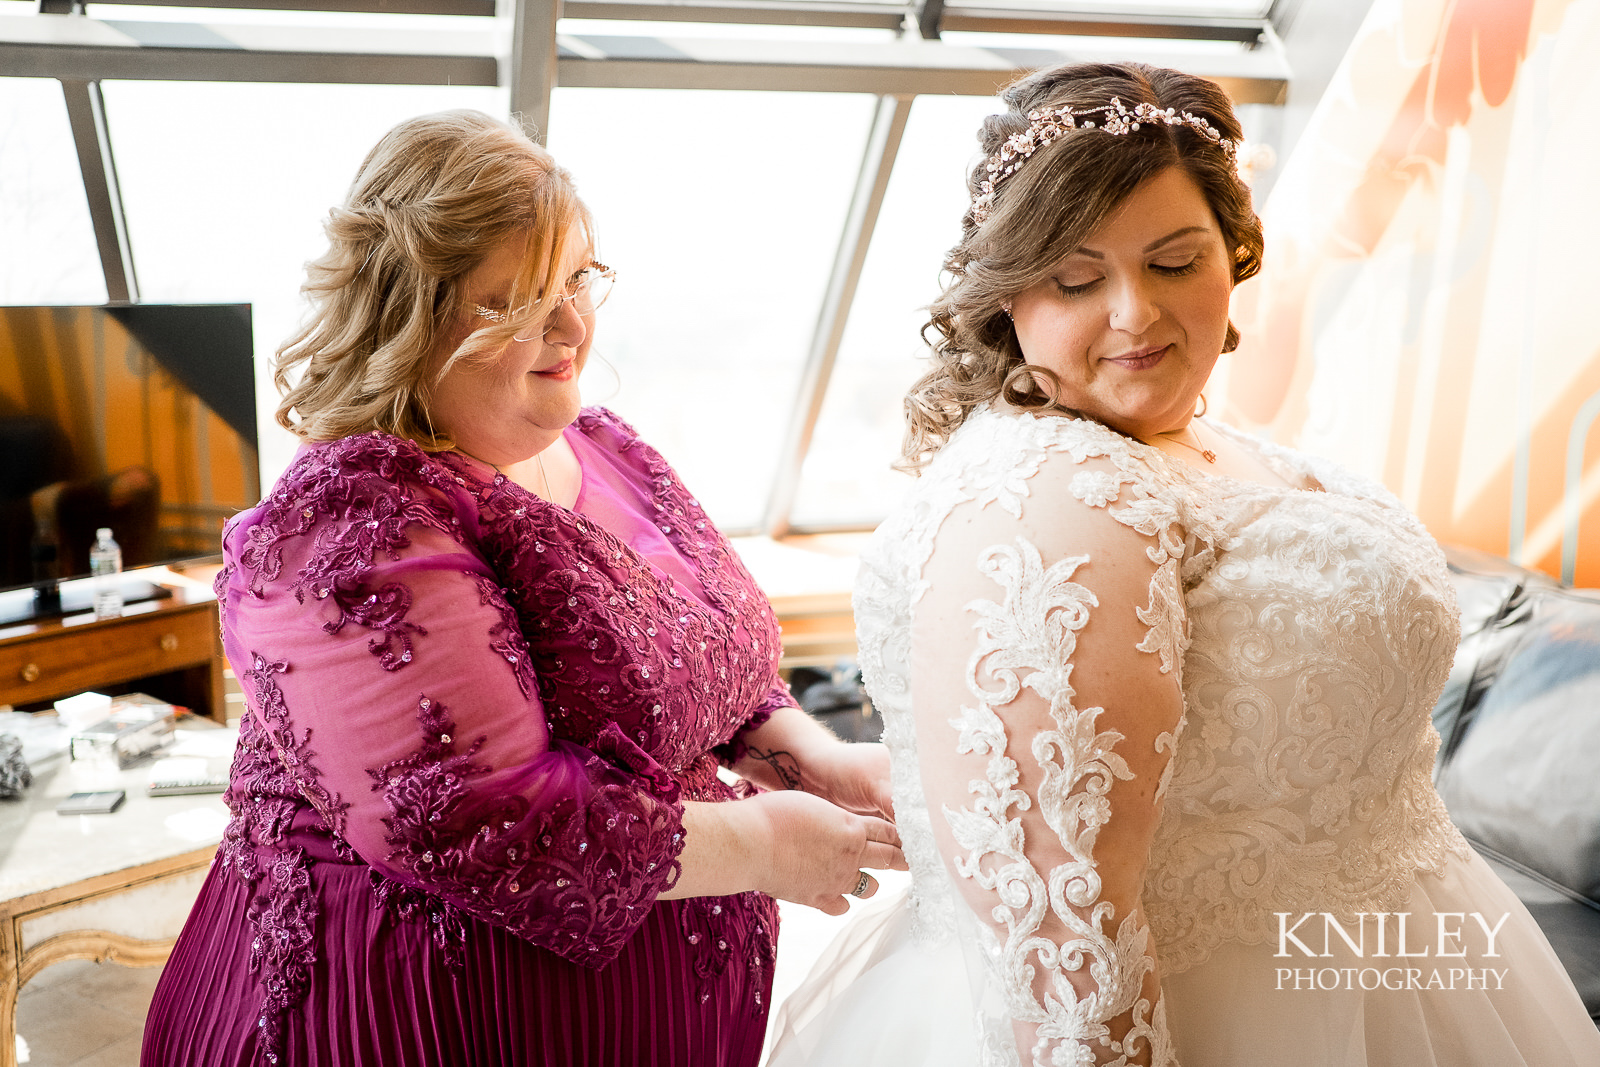 009 - Woodcliff Hotel - Rochester NY wedding photo - Kniley Photography.jpg